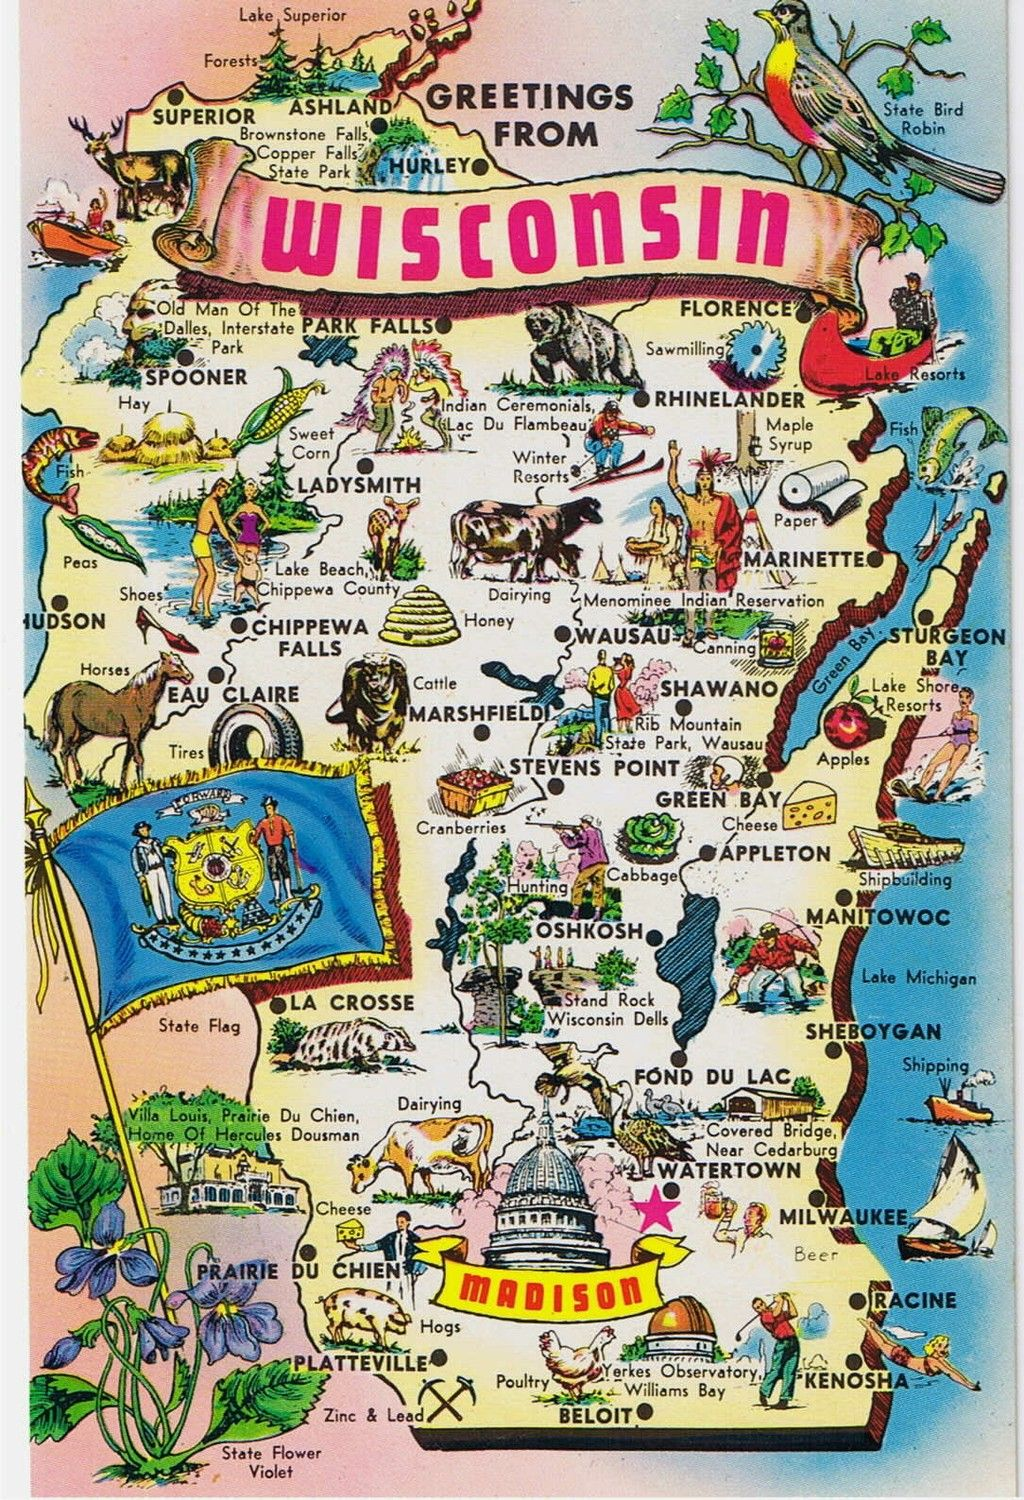 Vintage Usa Maps Vintage Postcards States Maps USA Wisconsin - Wisconsin map usa